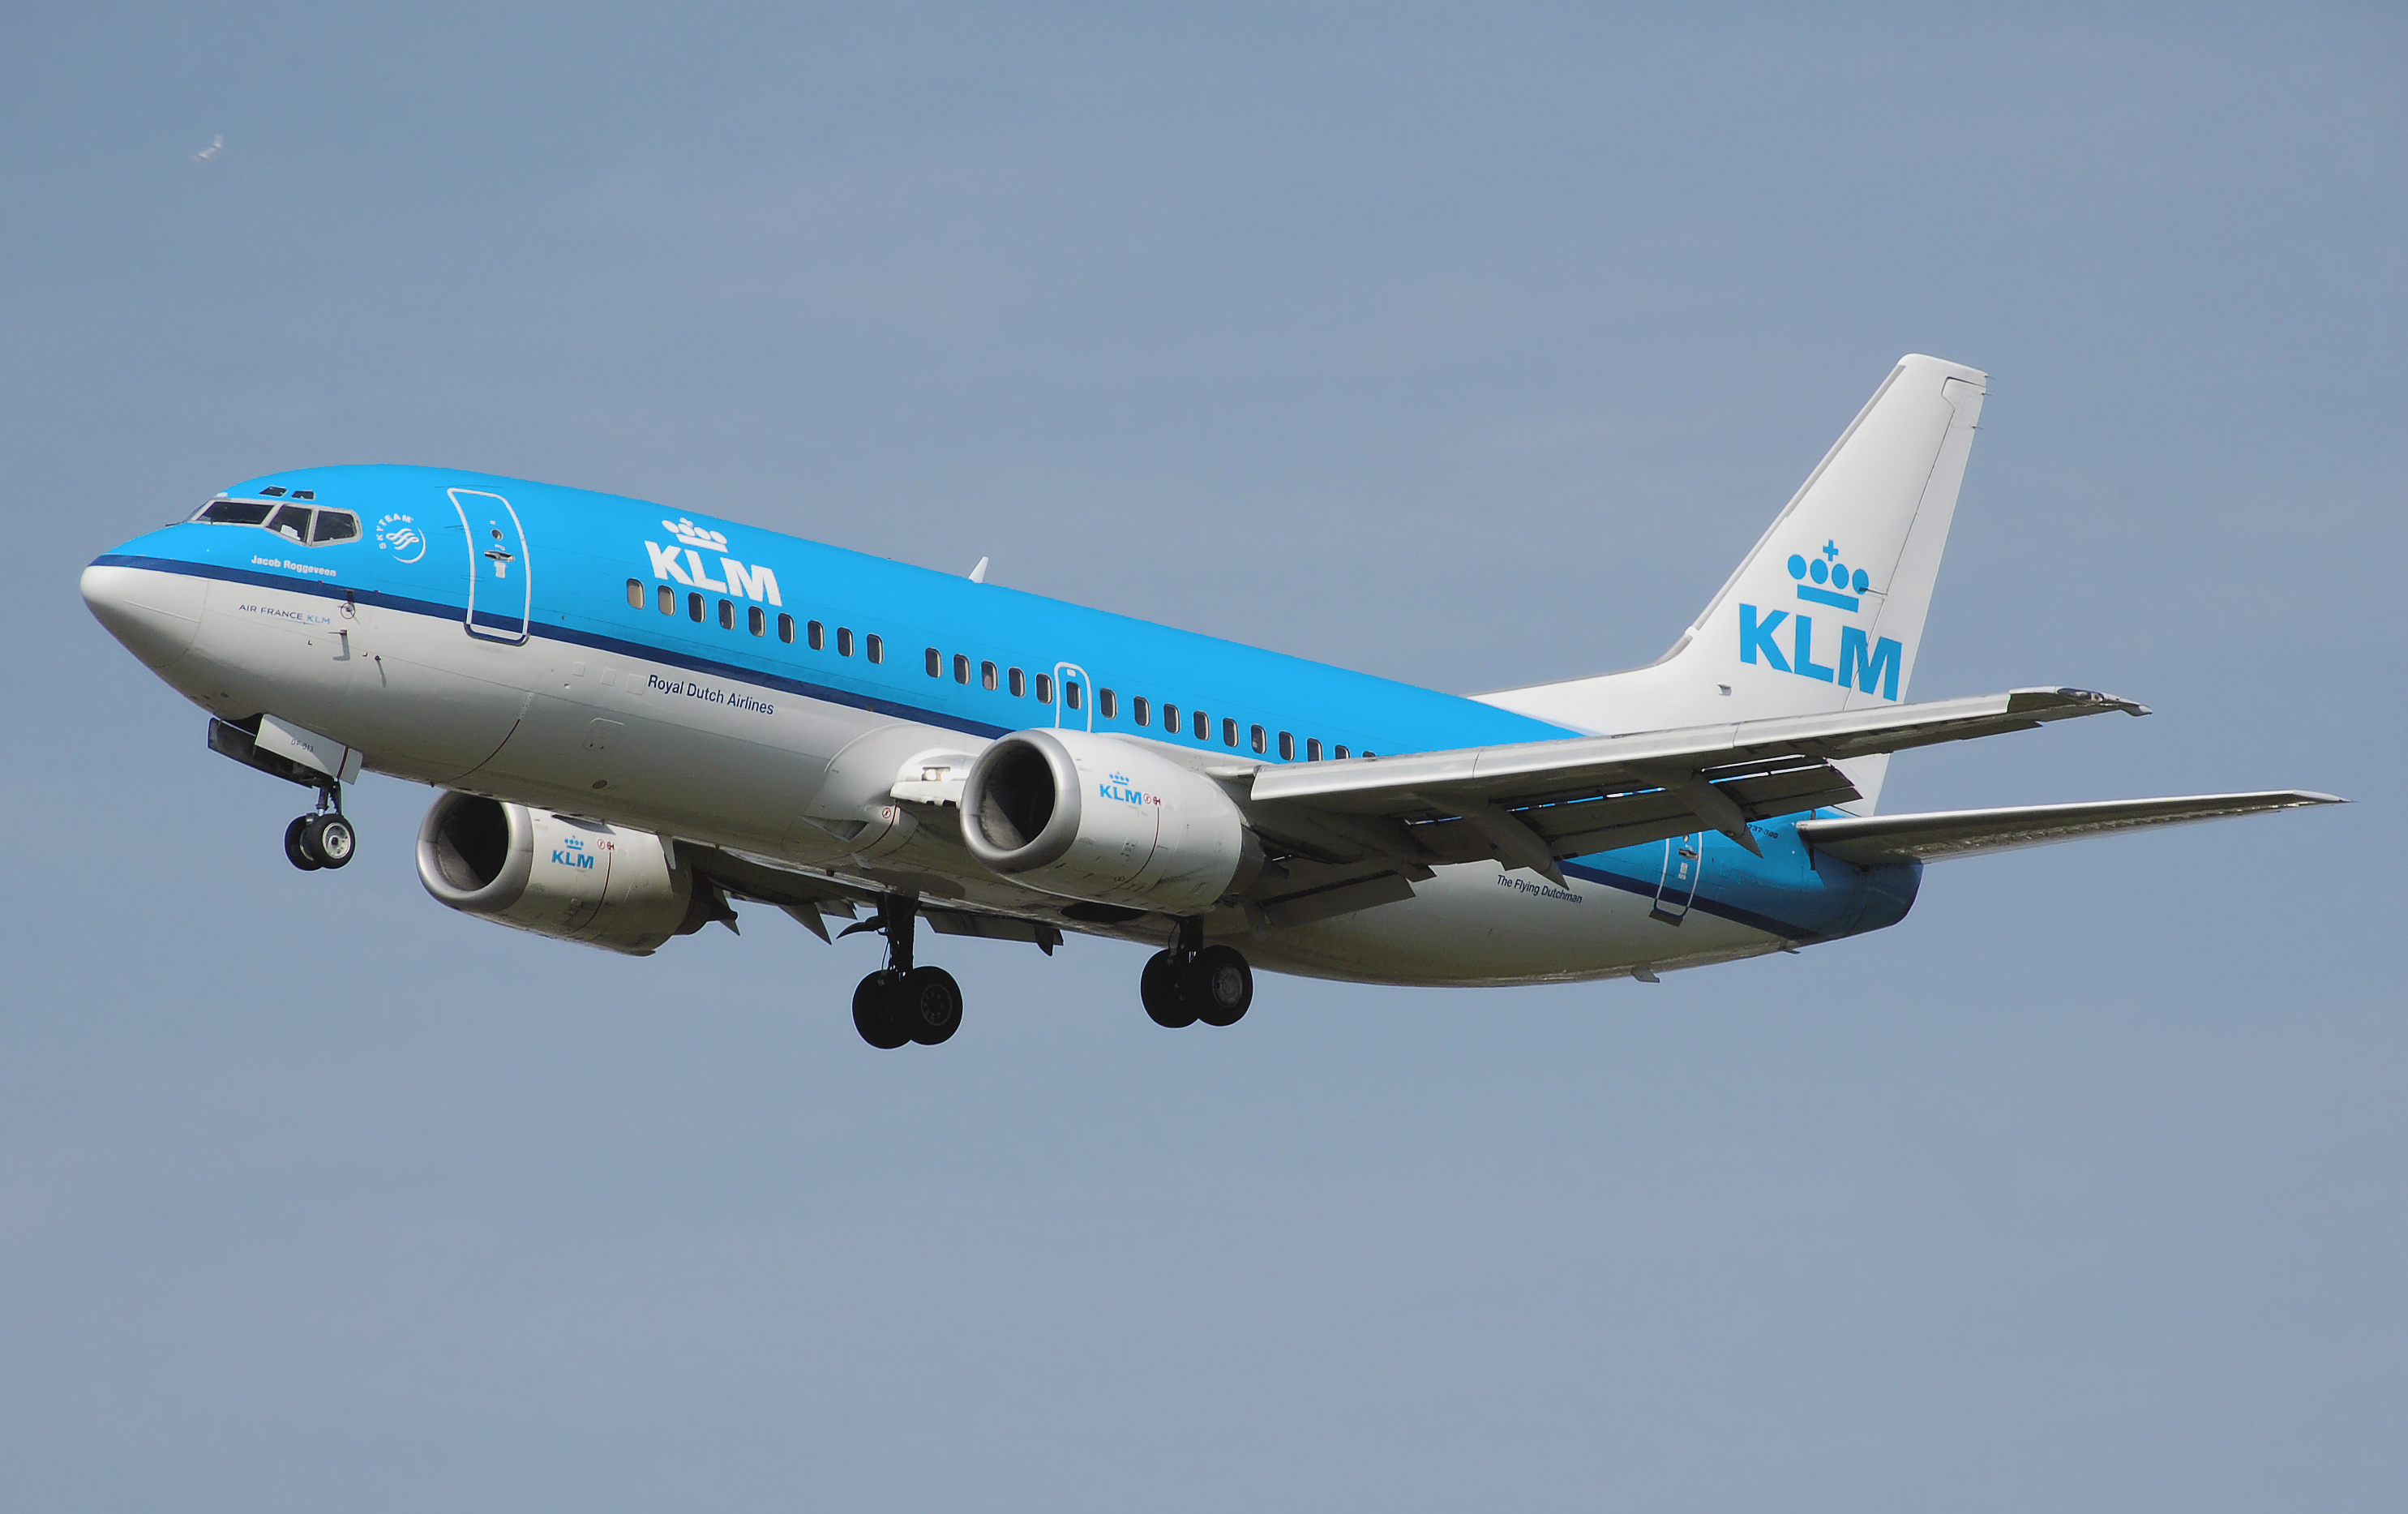 File:Klm.b737 300.ph Bdp.arp on Hd Plane Wallpapers